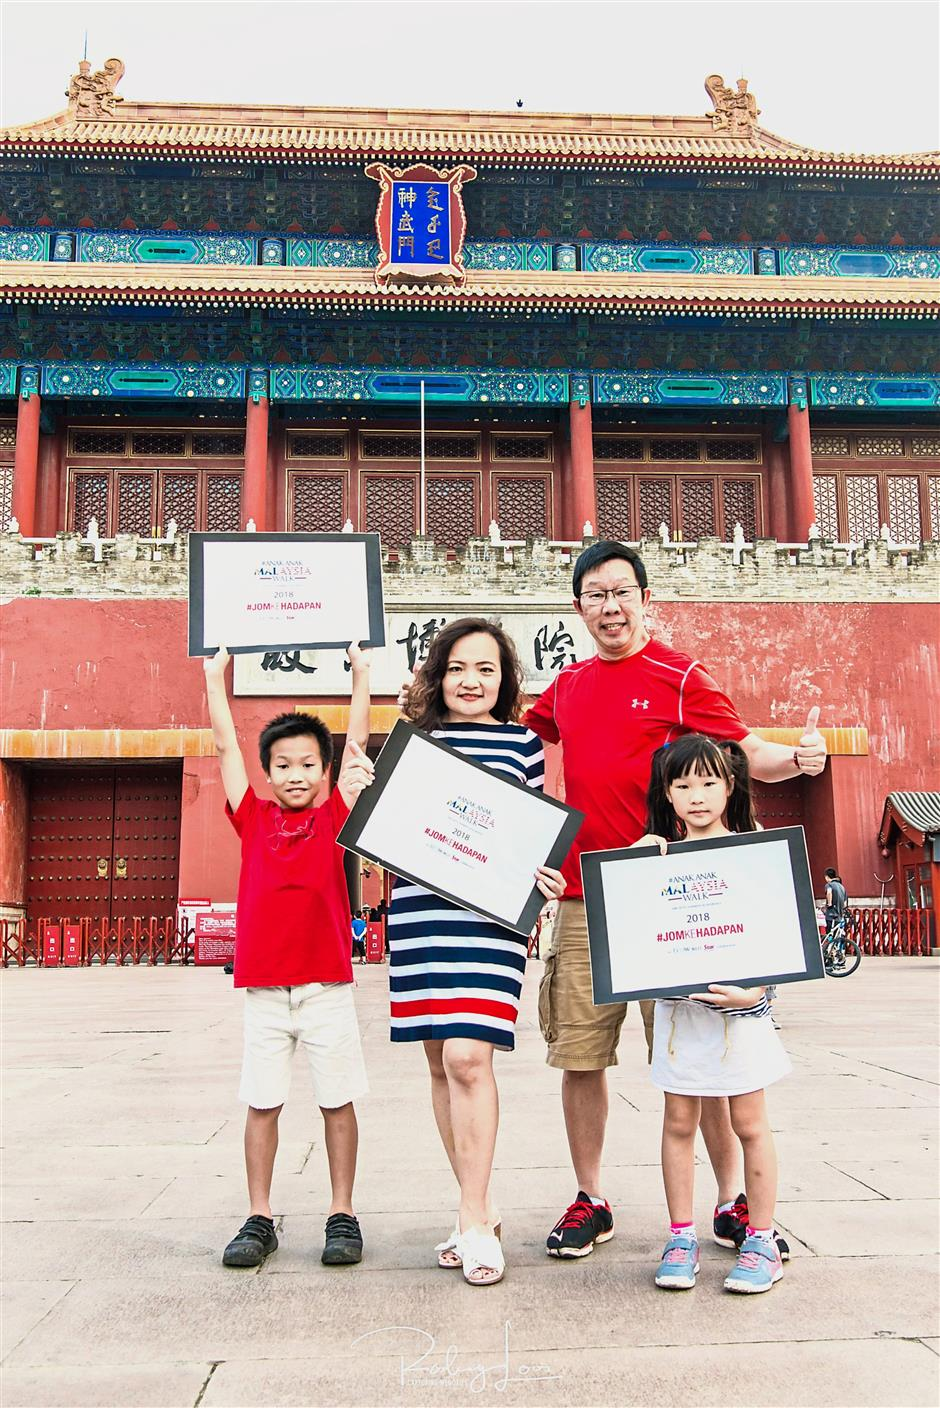 Family affair: Windows Category Management (Microsoft) director Catherine Goh, photographer Rodney Looi and their children Ryan and Chenya at the Forbidden City in Beijing.